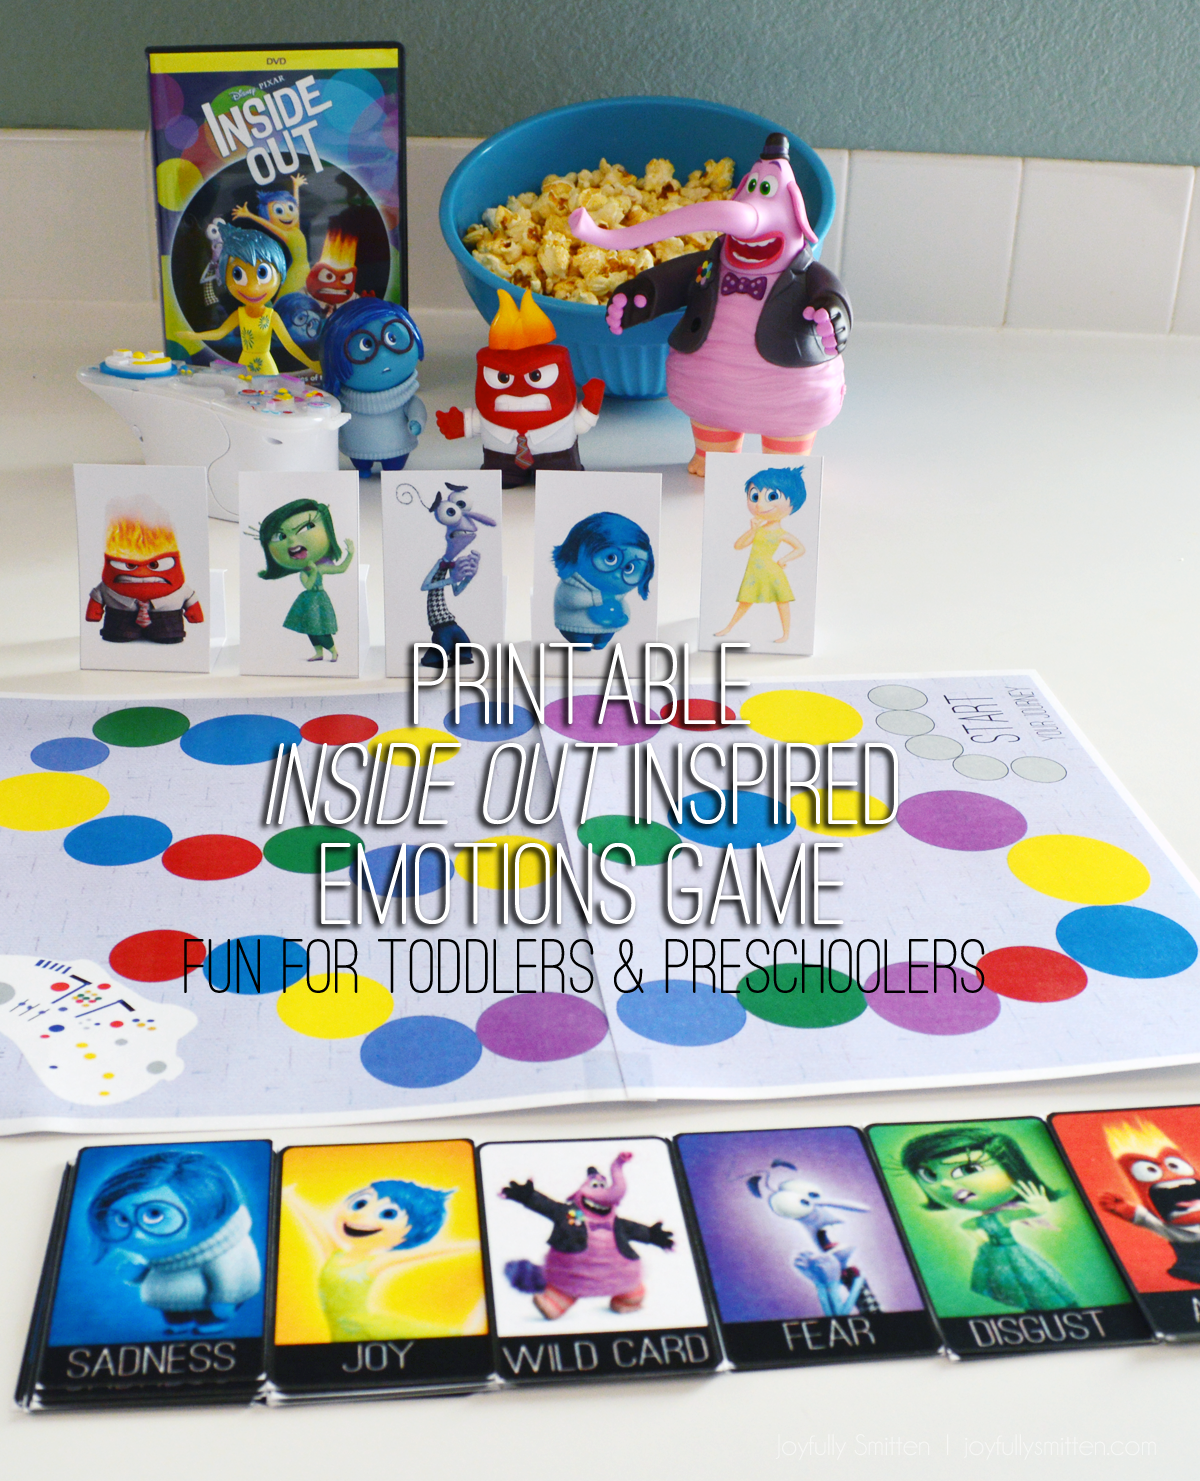 Inside Out Inspired Emotions Board Game. Teach and discuss emotions with your toddler or preschooler in this fun game starring the emotions from Inside Out